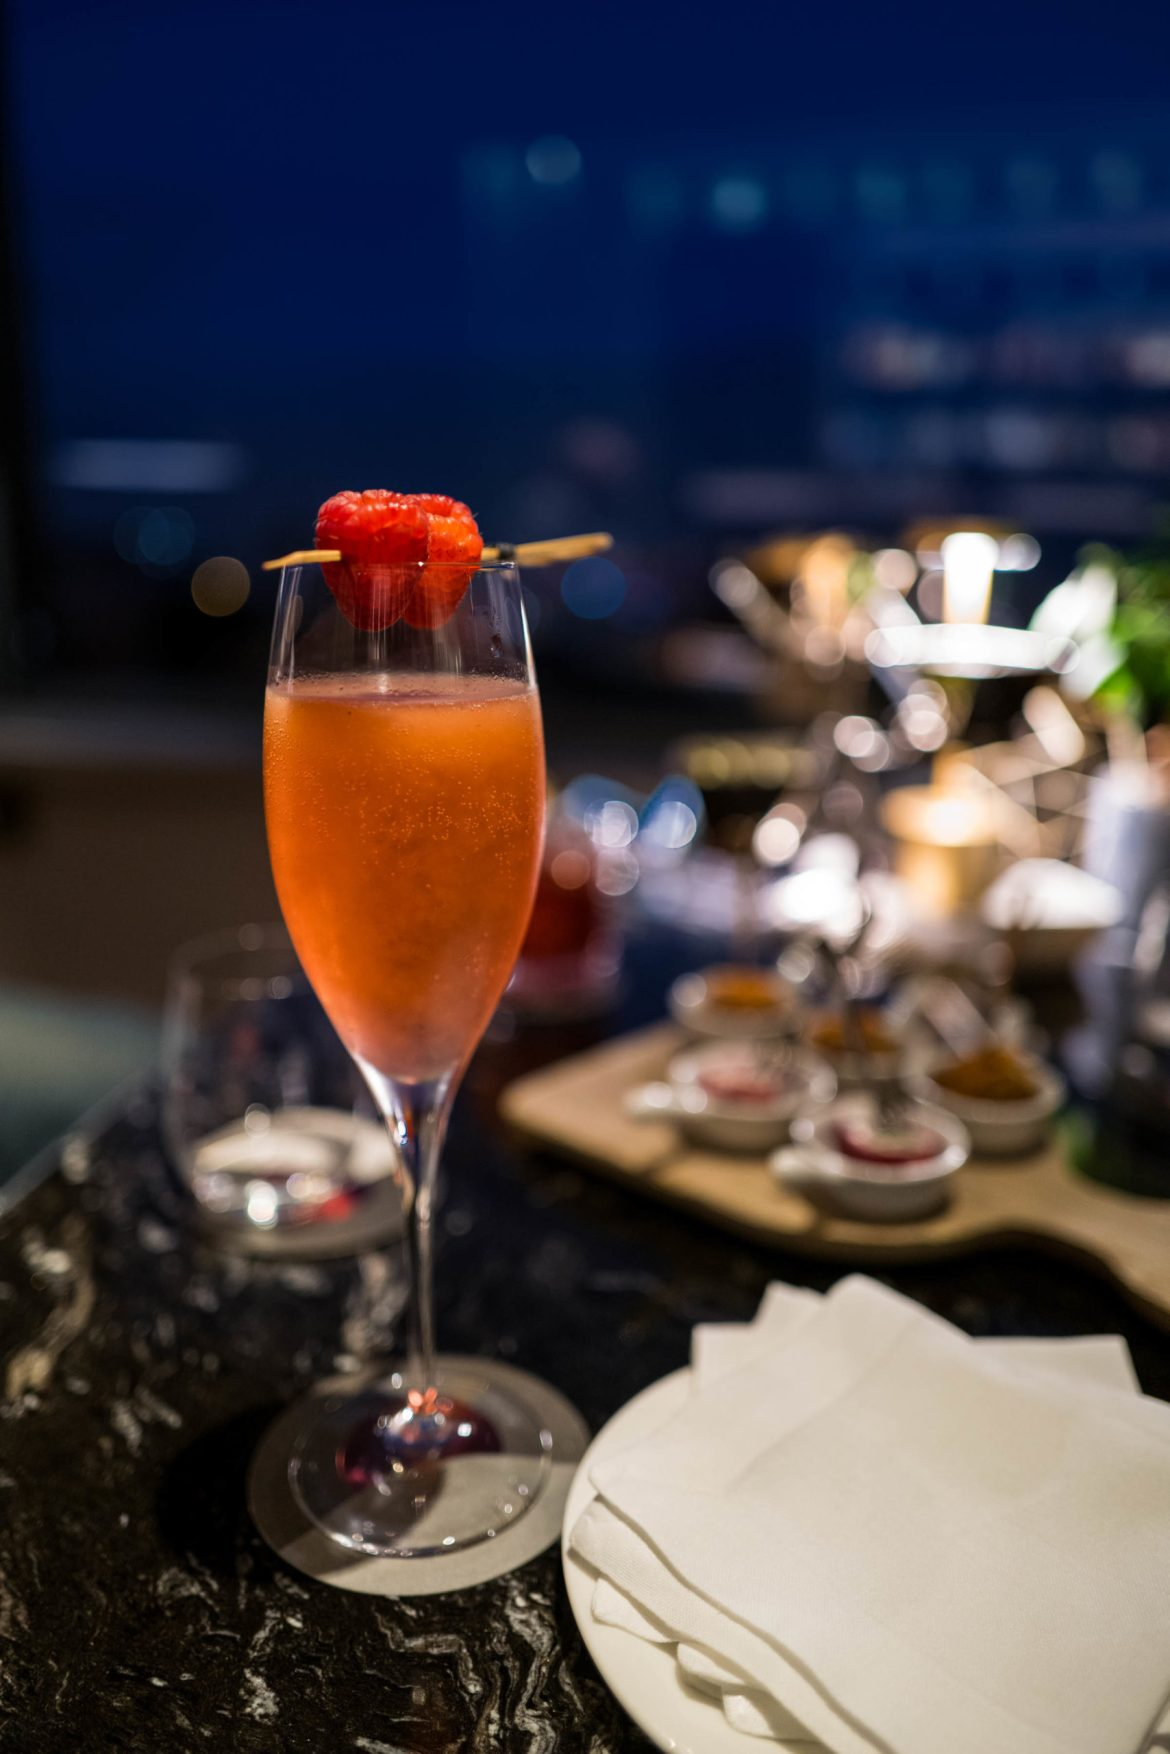 Garnished with a raspberry this cocktail is perfect for a fun cocktail at the Hotel Eden Rome, The Taste Edit #hotel #rome #italy #bar